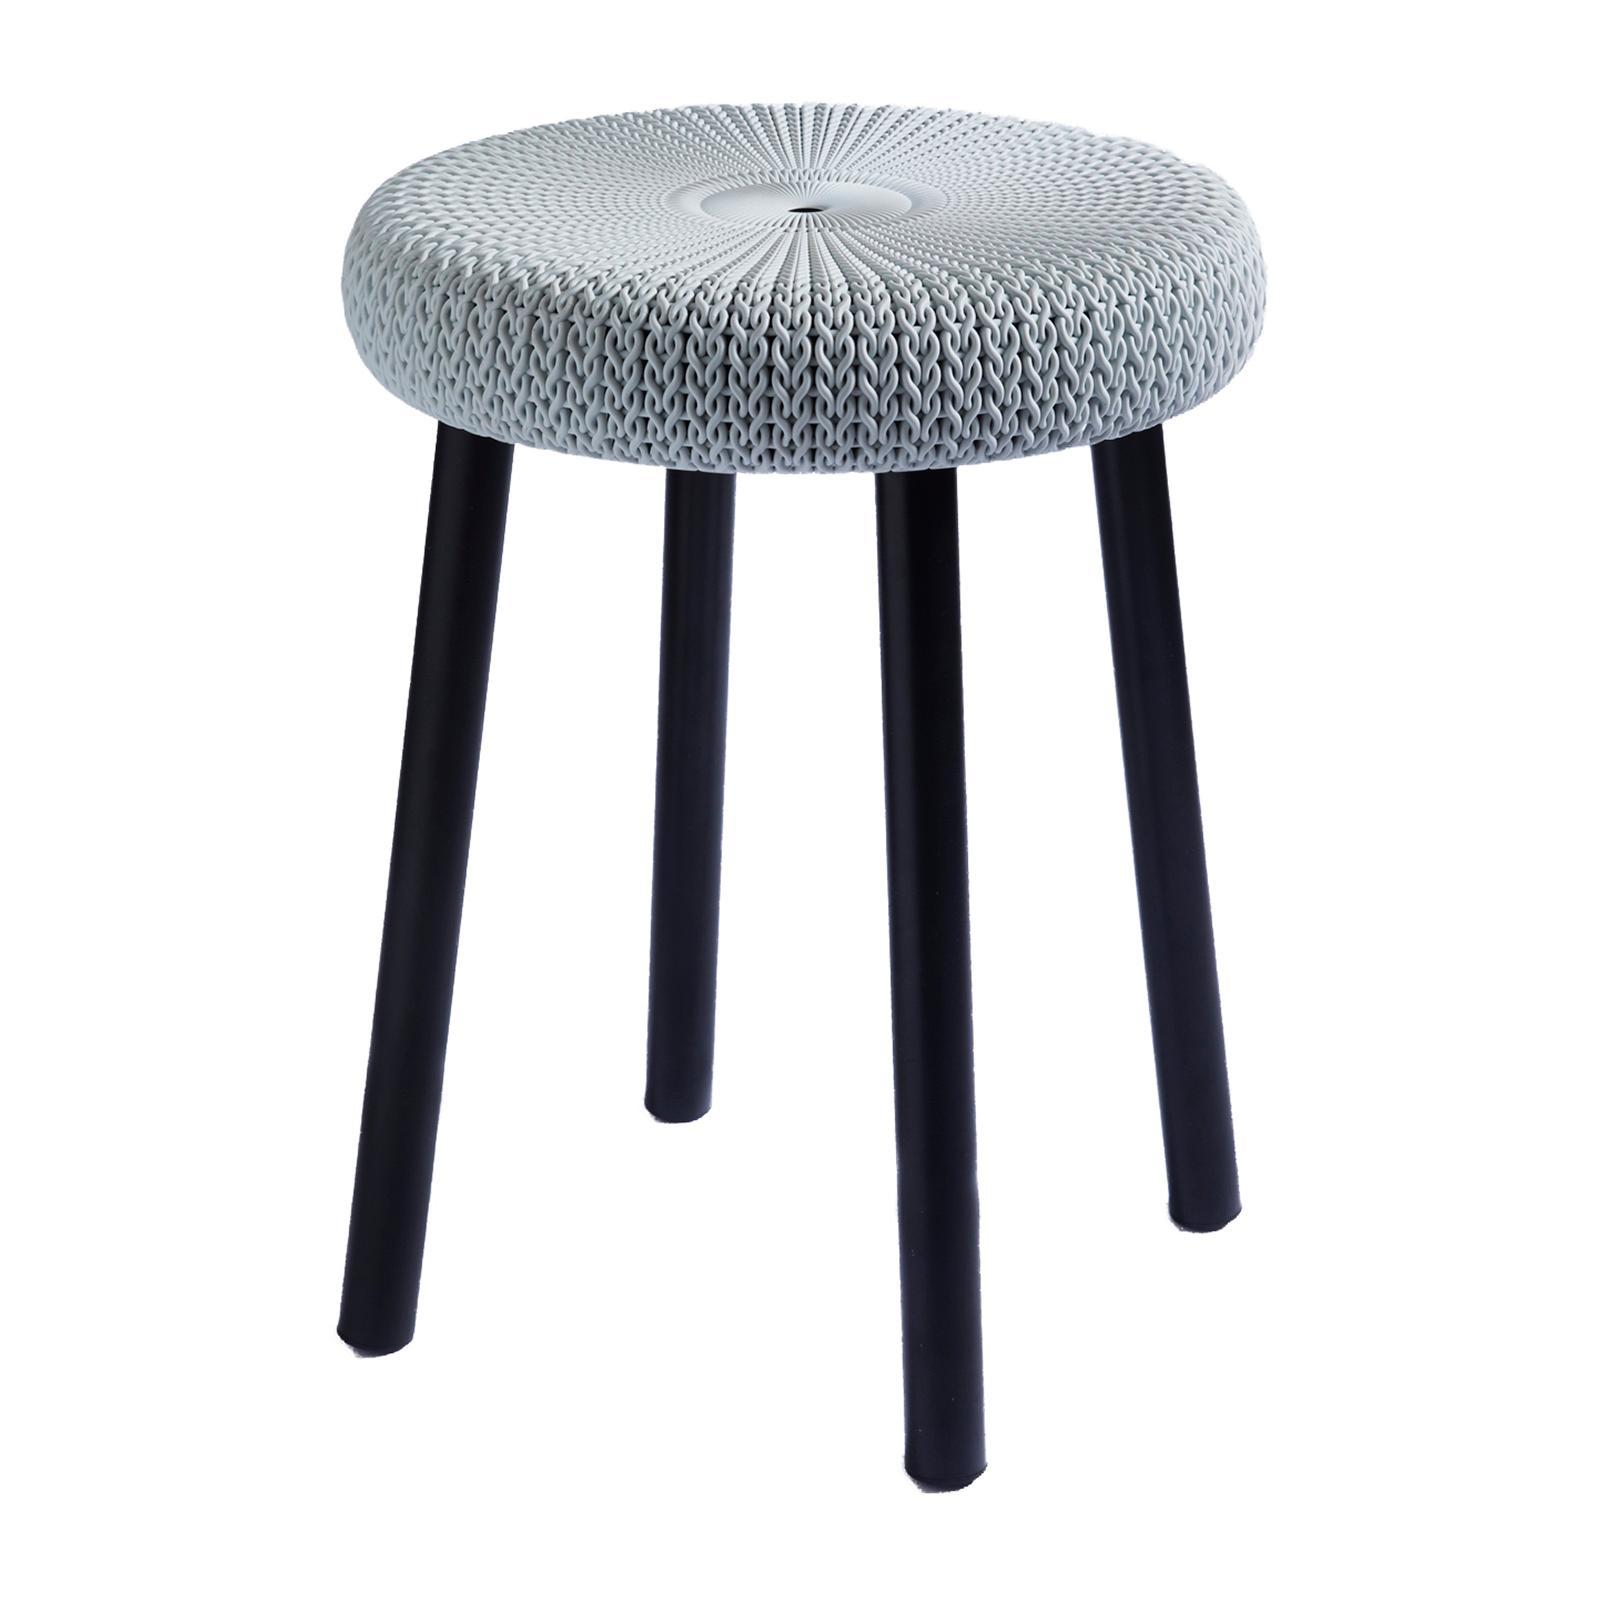 Keter Cozy Stool Foggy Grey